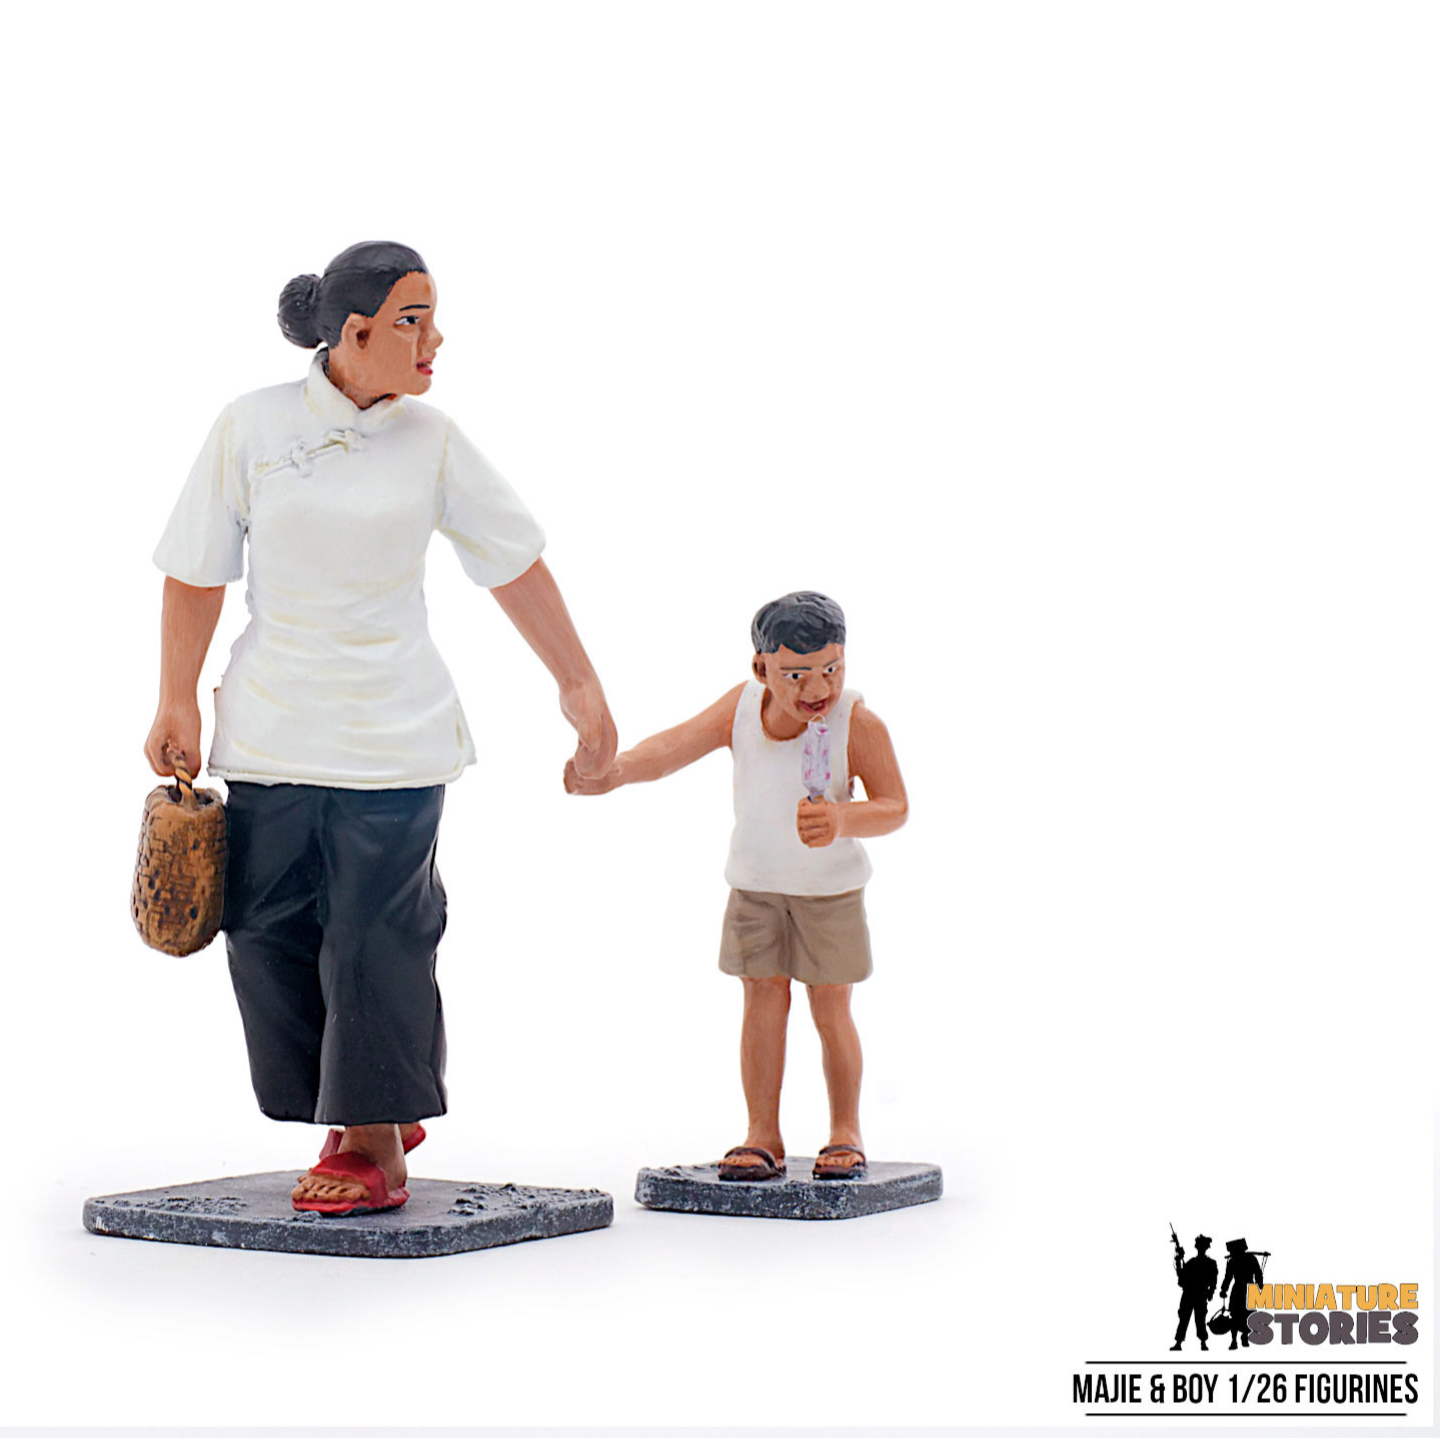 Majie and Boy Figurines